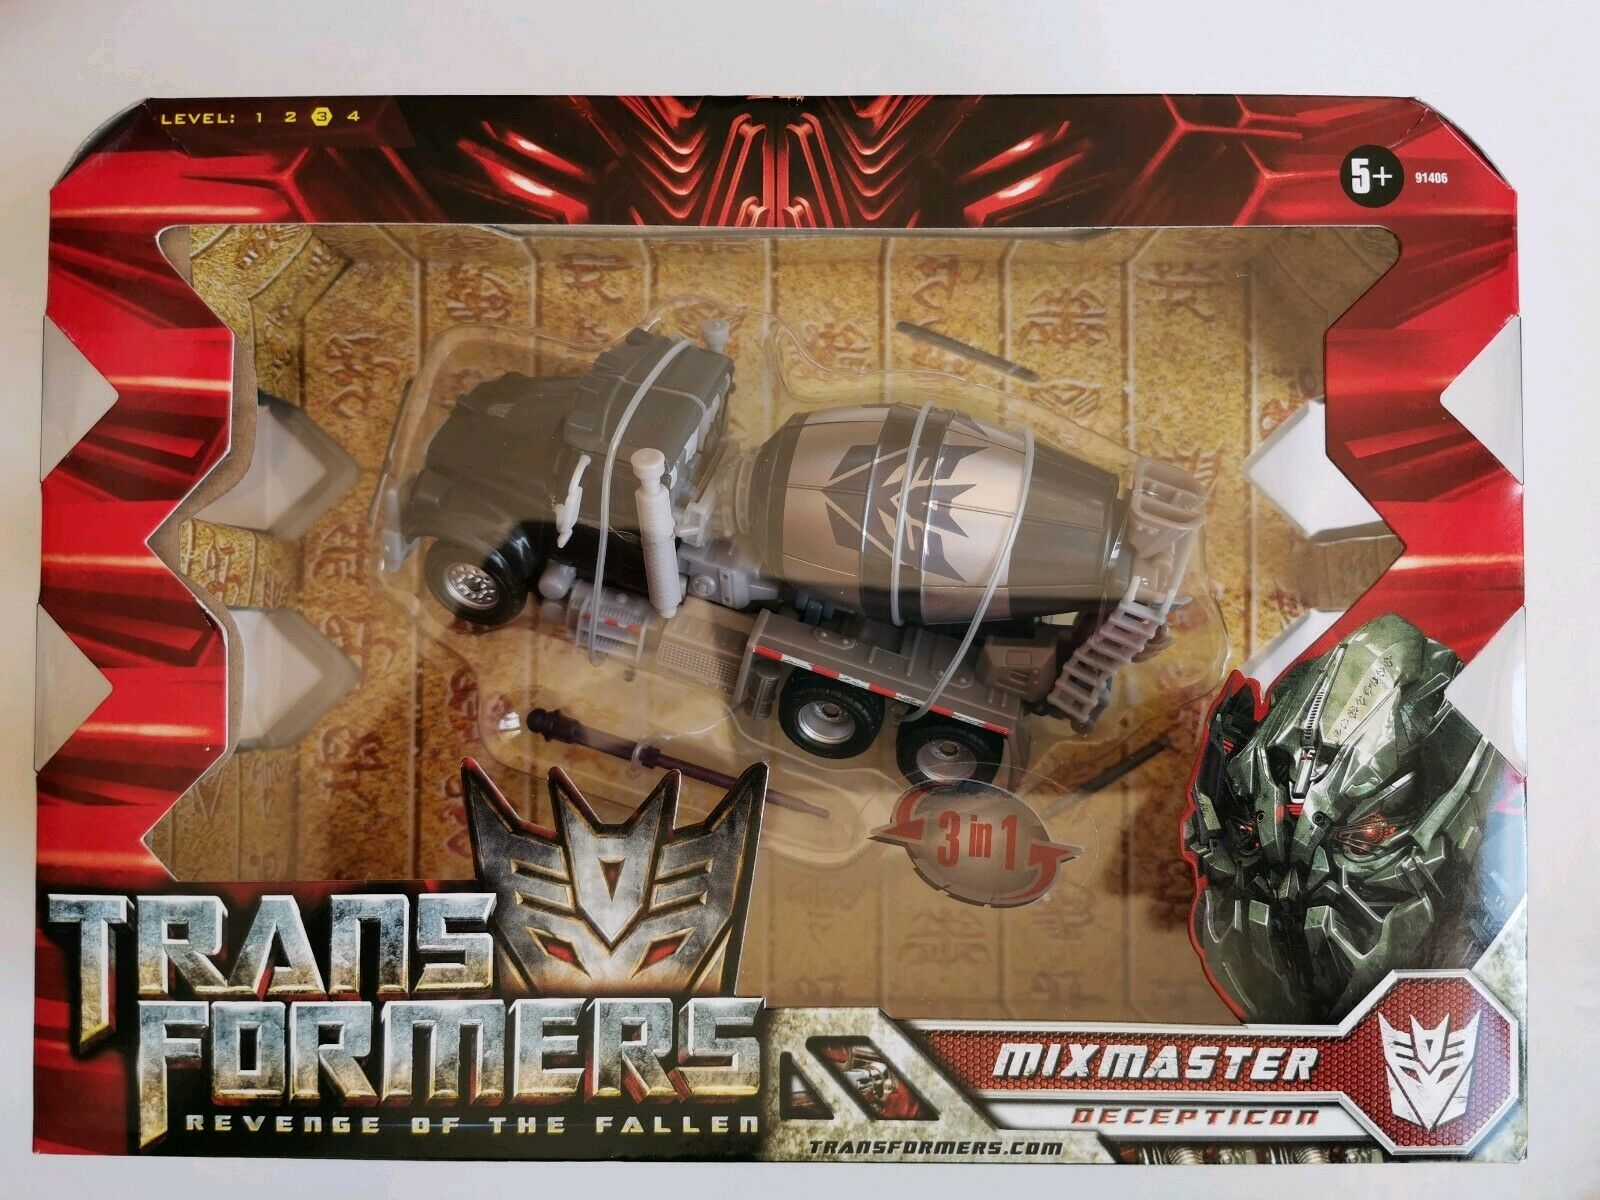 TRANSFORMERS REVENGE OF THE FALLEN ROBOT MIXMASTER DECEPTICON 91406 EN BOÎTE